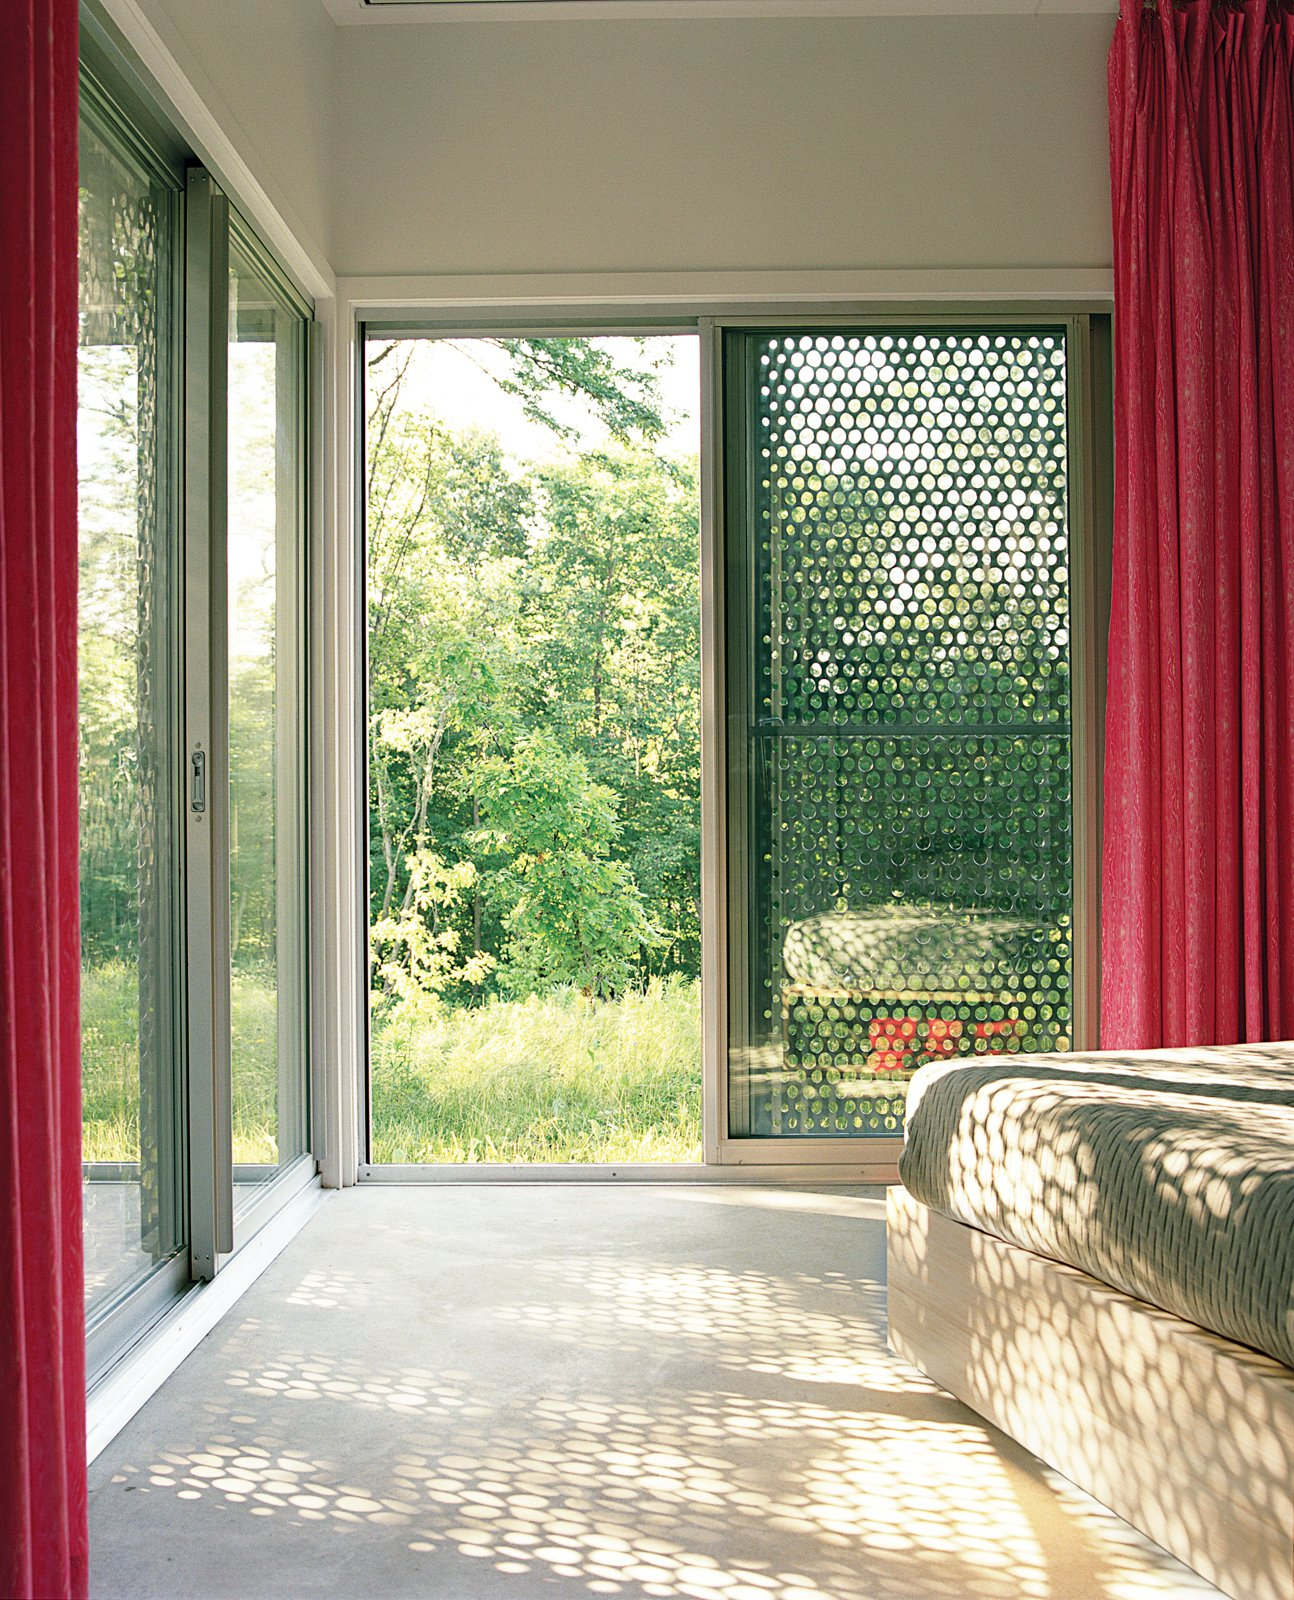 In the master bedroom, the same perforated material that was used in the bathroom gives a sense of sunlight filtering through leaves.  Photo 4 of 12 in 5 Sustainable Ways To Beat the Heat Without Air Conditioning from New Grass Roots